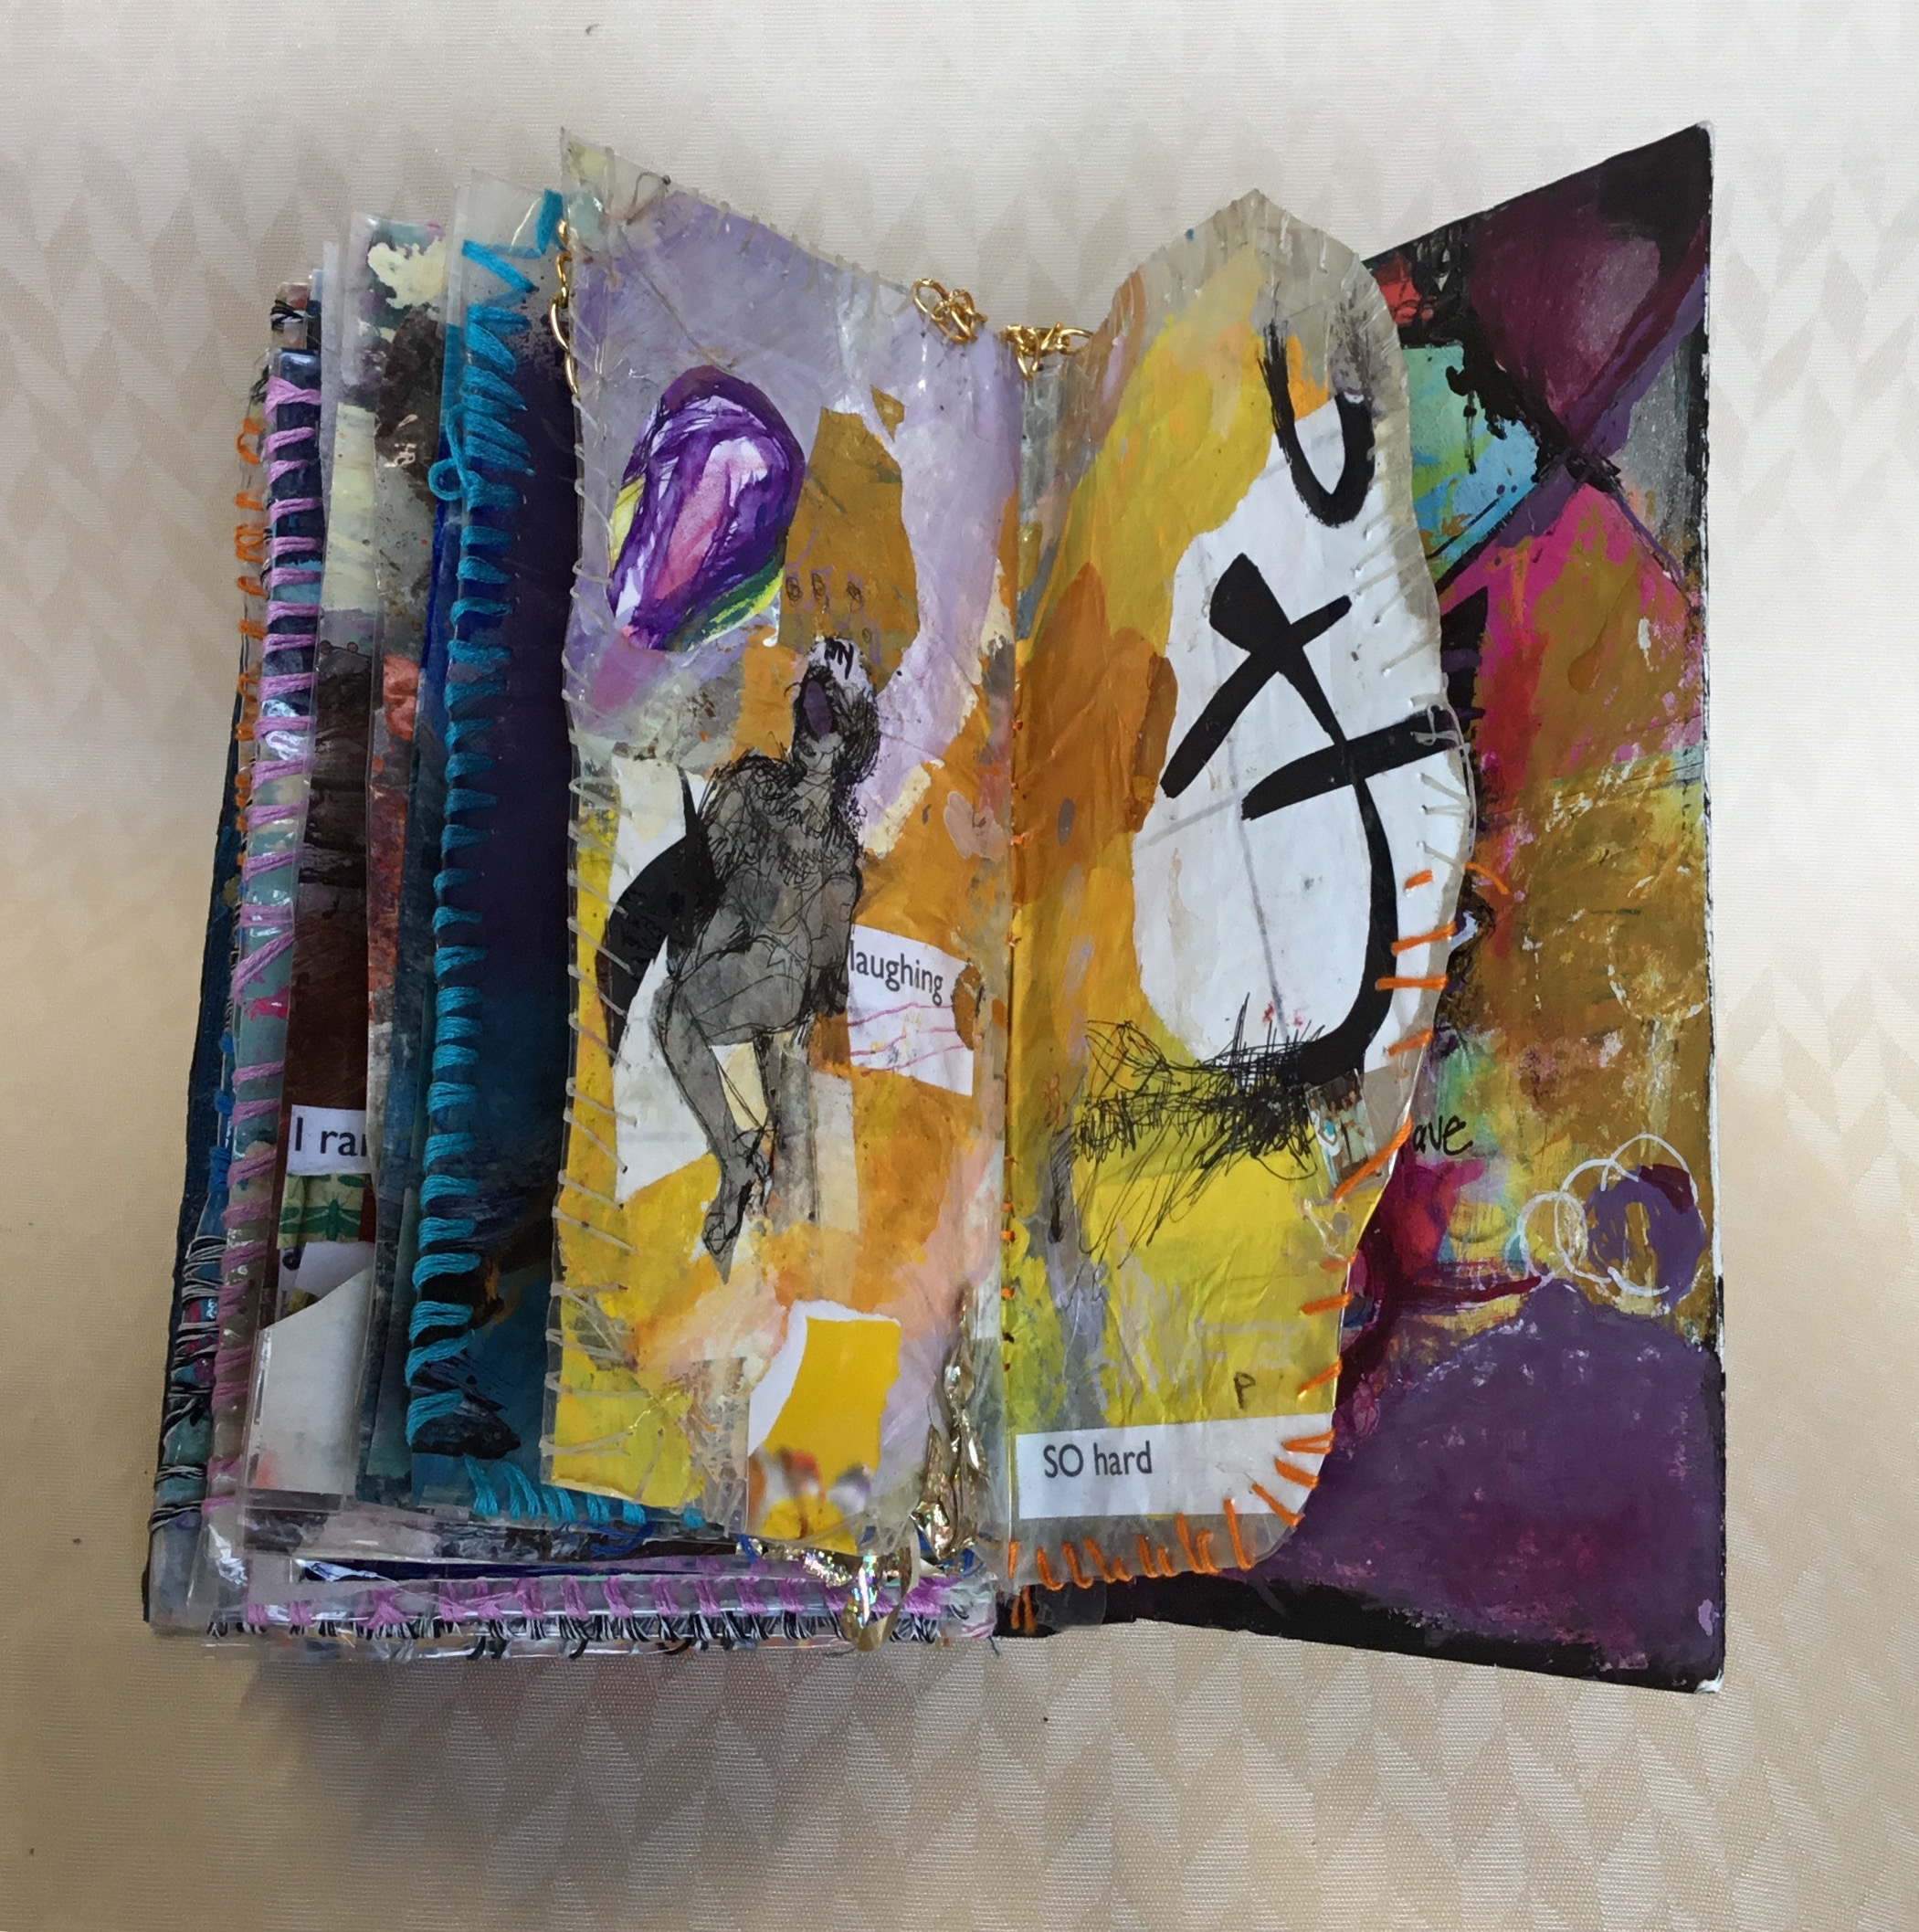 Artist Books - The mark of a true artist shines when they cannot hold themselves back to keep creating new and experimental pieces. Each book is filled with hundreds of individual works of art stretching across a variety of themes, styles, and color palettes.